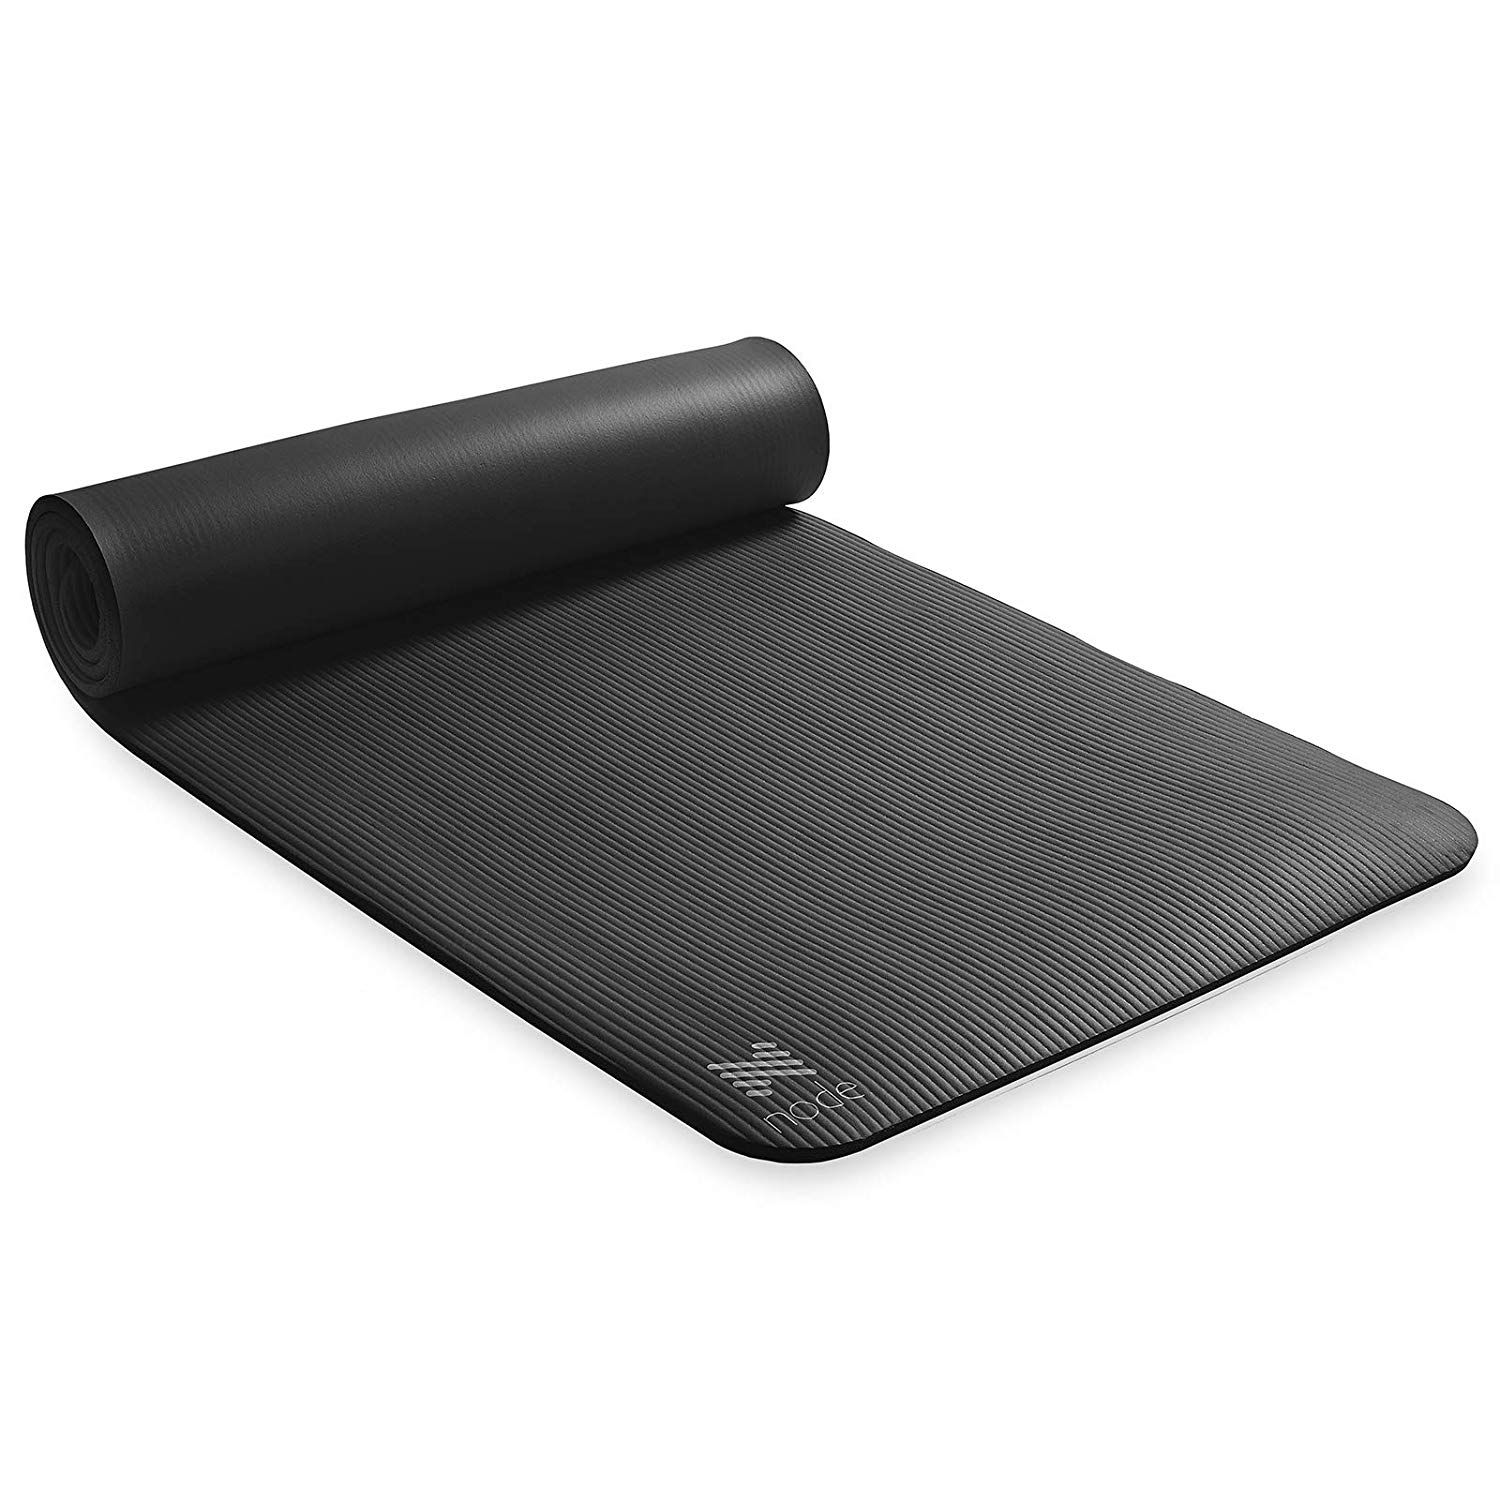 Node Fitness 72 X 24 Yoga Mat 1 2 Extra Thick With Carrying Strap Yogamat Yoga Mat Fitnessmat Fitness Exercisemat E Mat Exercises Yoga Fitness